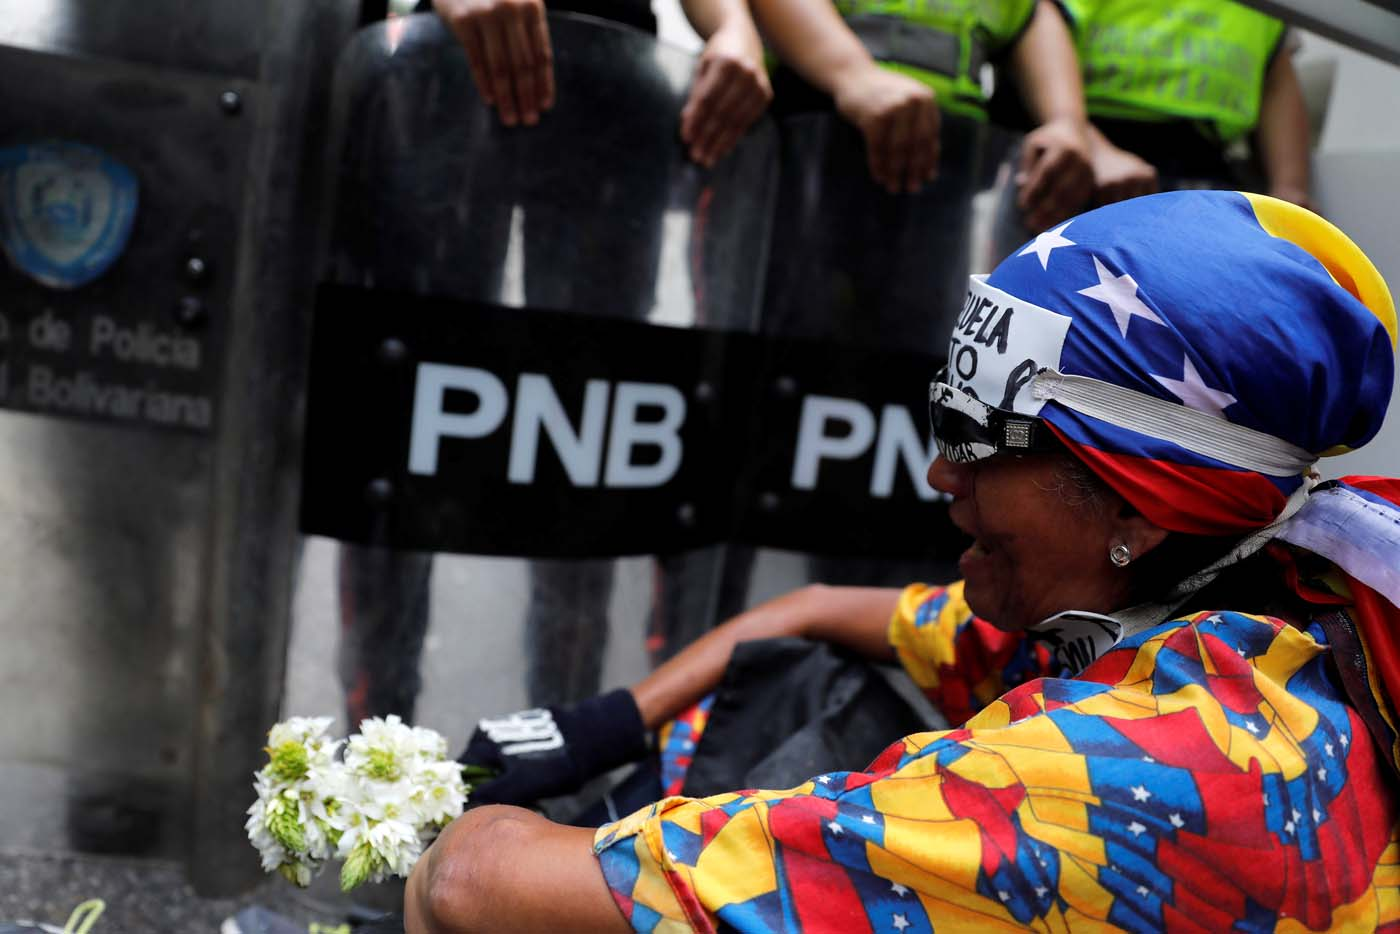 A demonstrator holds flowers next to riot policemen during a women's march to protest against President Nicolas Maduro's government in Caracas, Venezuela, May 6, 2017. REUTERS/Carlos Garcia Rawlins